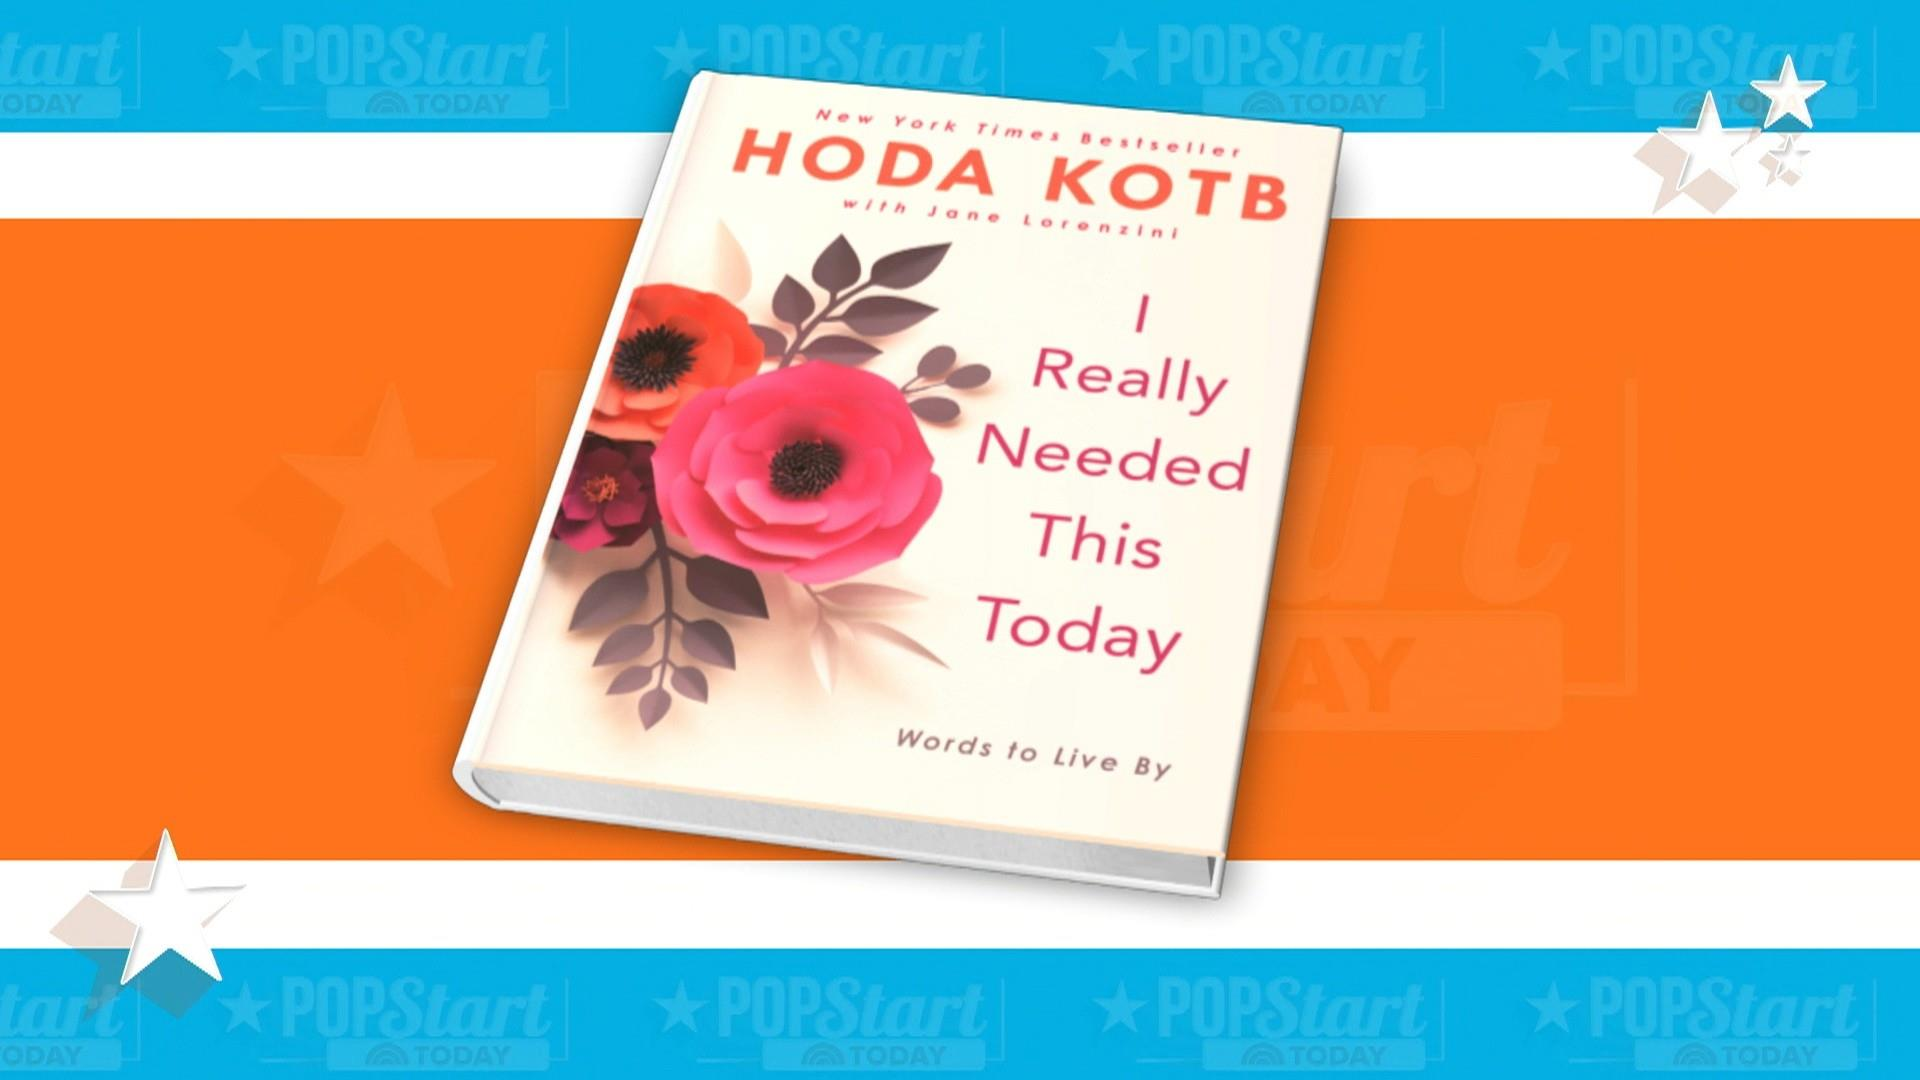 See Hoda's book, 'I Really Needed This Today,' hot off the presses!